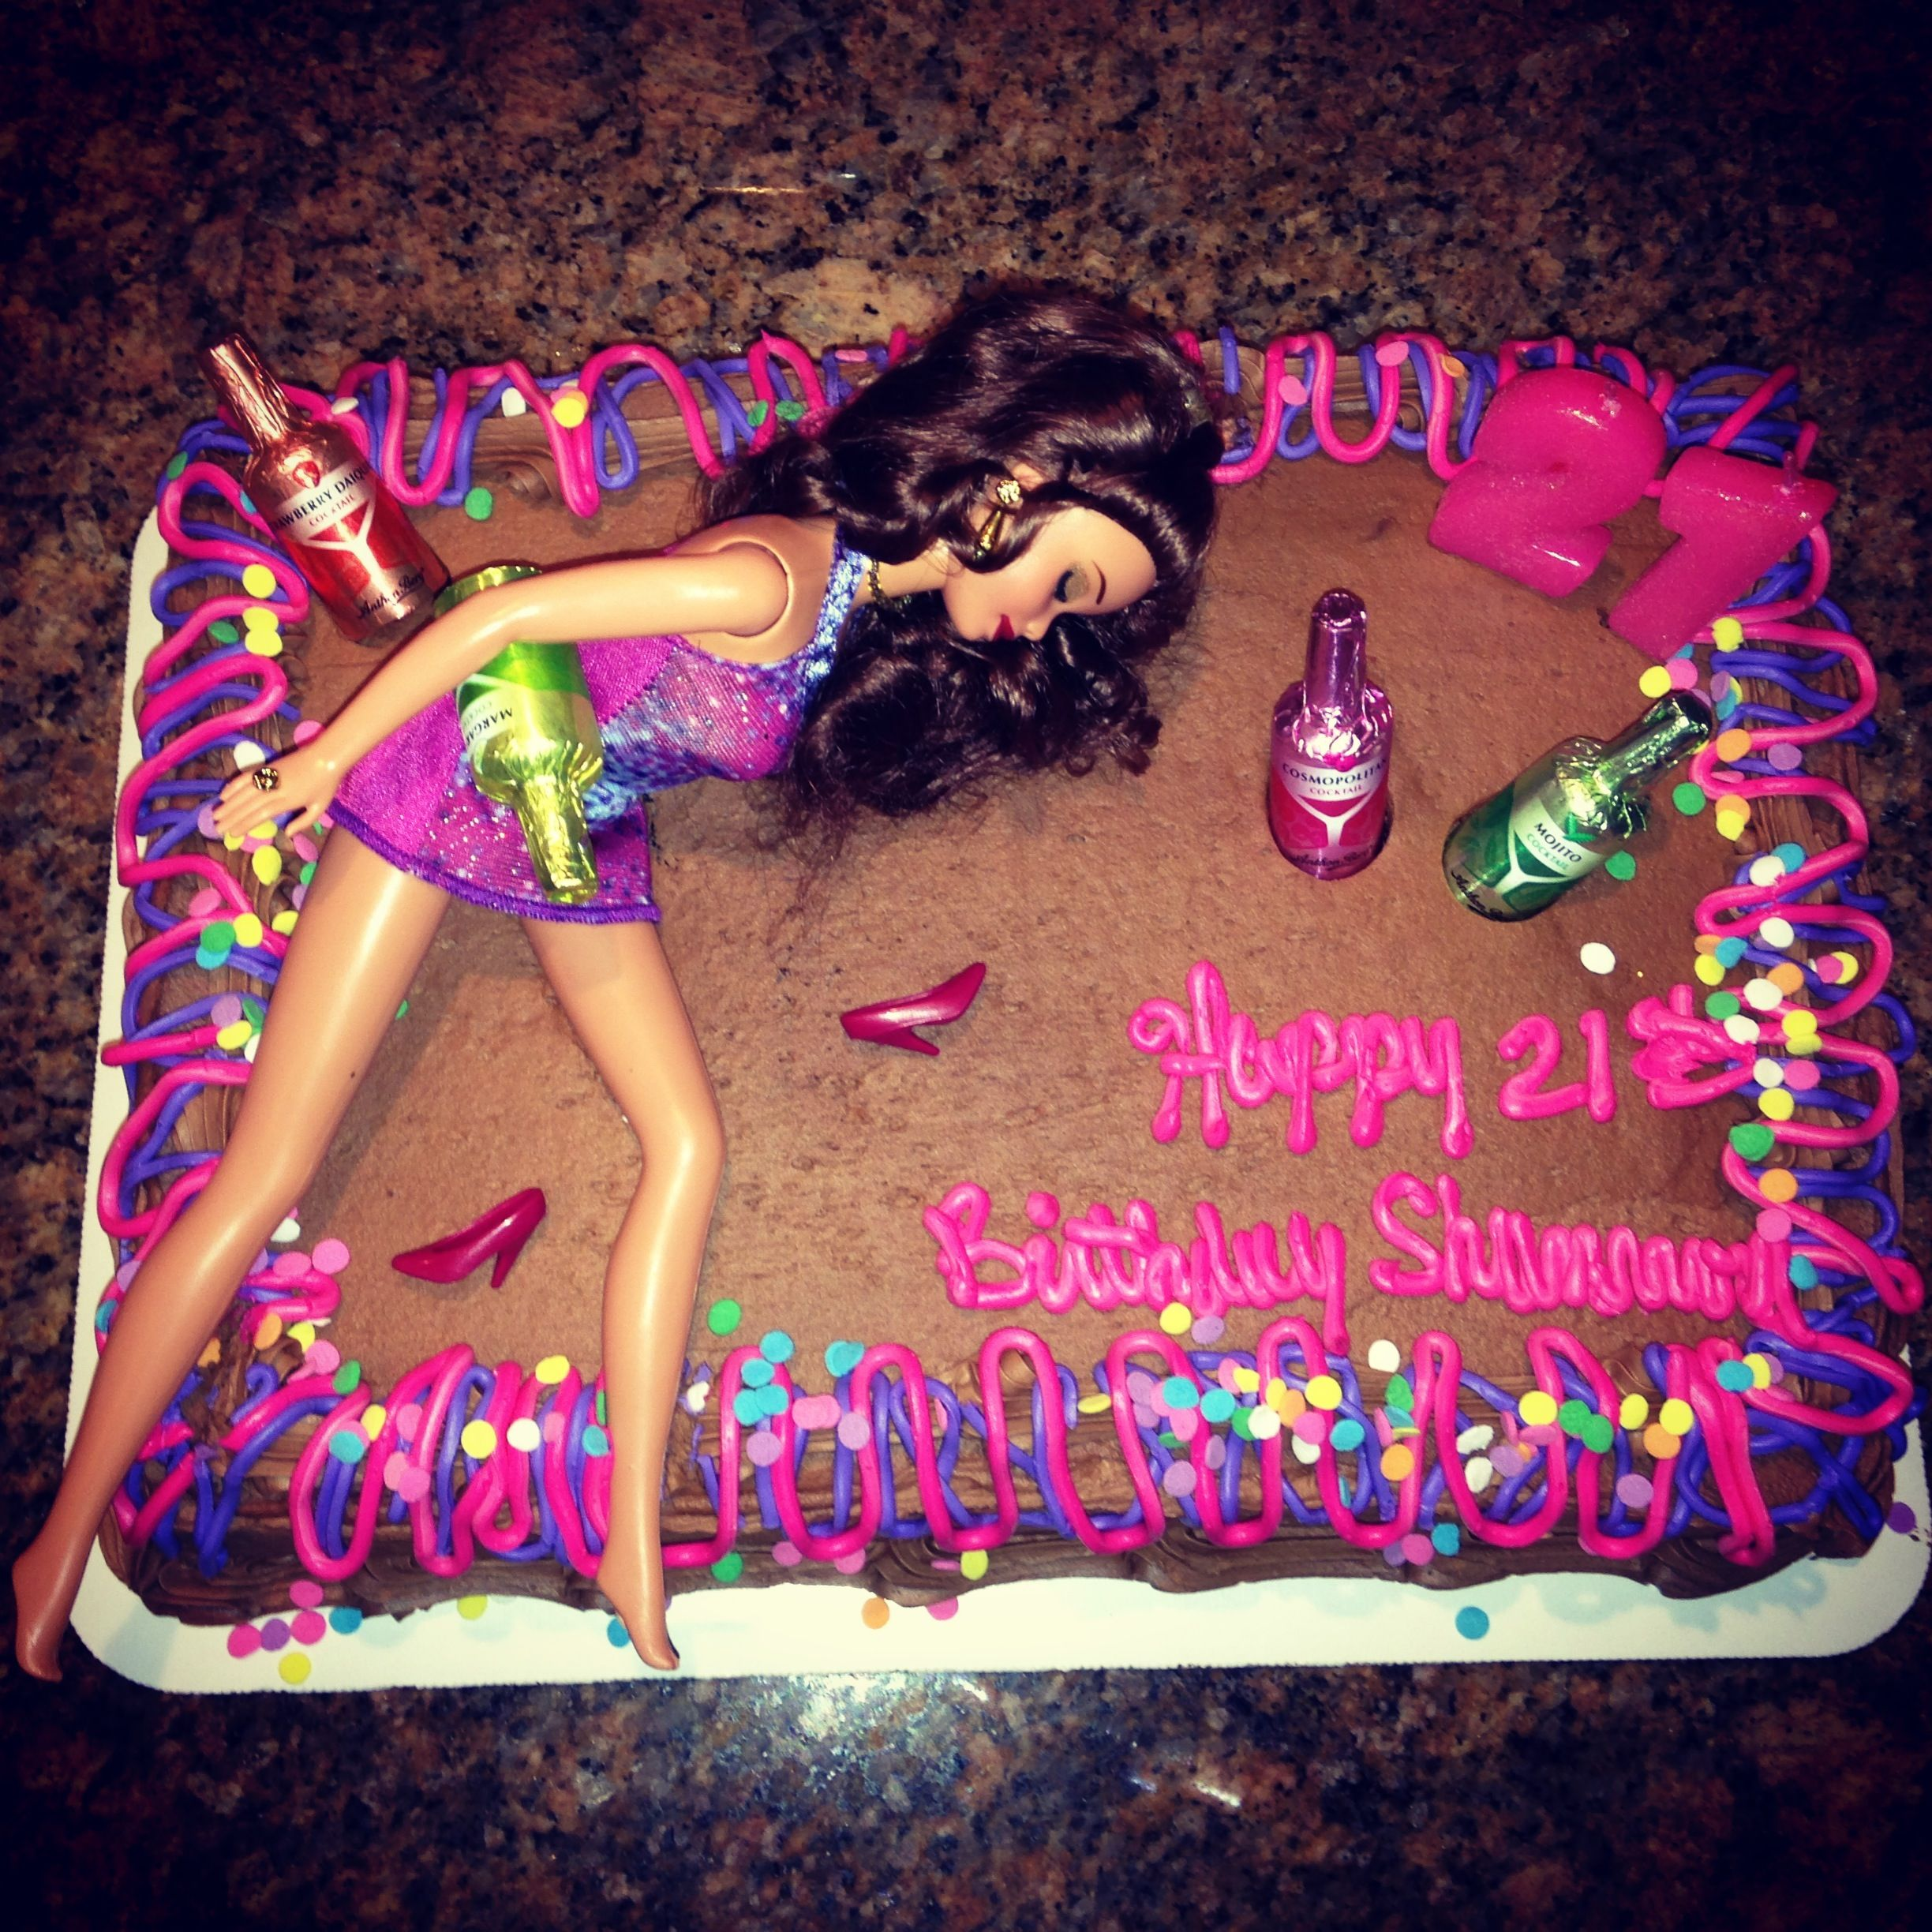 21st Birthday Drunk Barbie Cake! This Is So Cute!! I Want